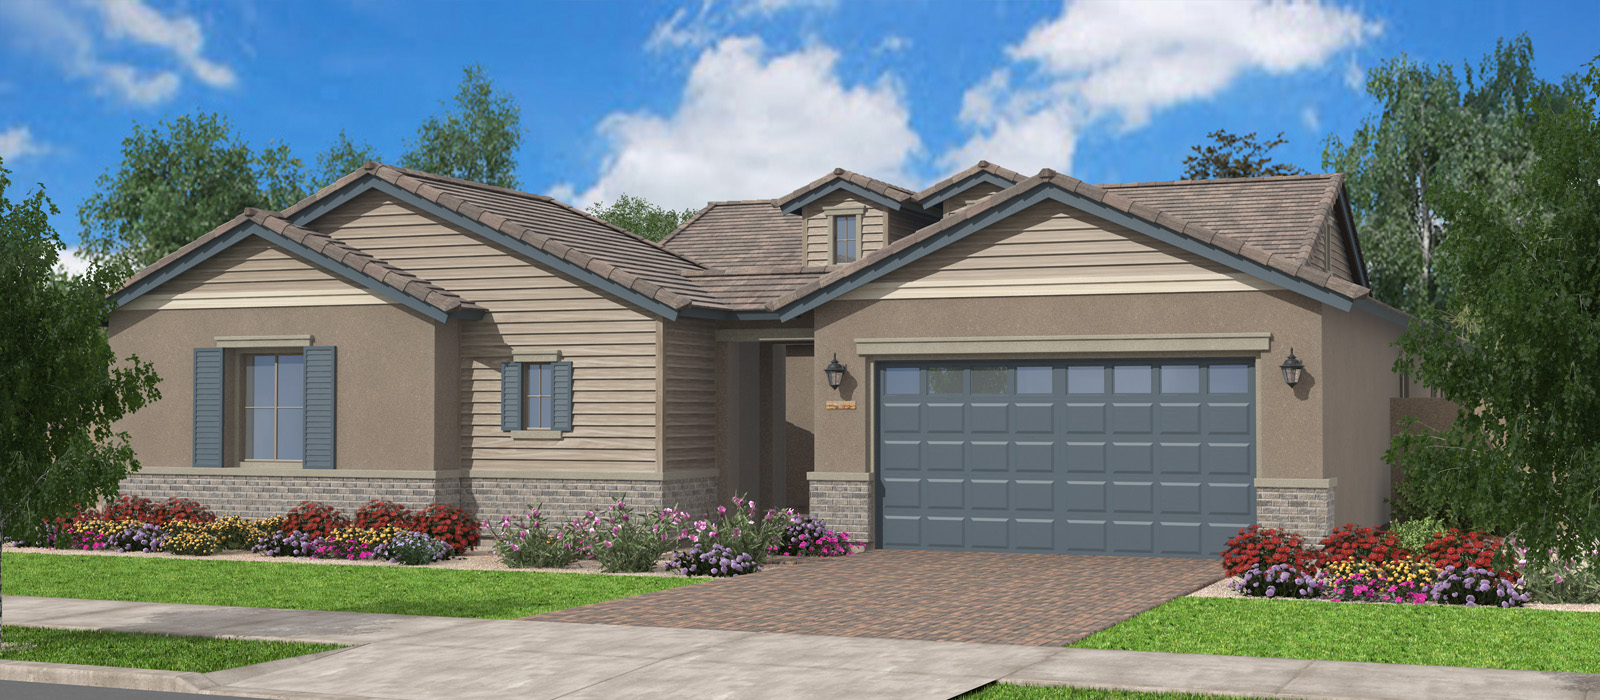 Burlingame Peninsula At Queen Creek Station By Fulton Homes